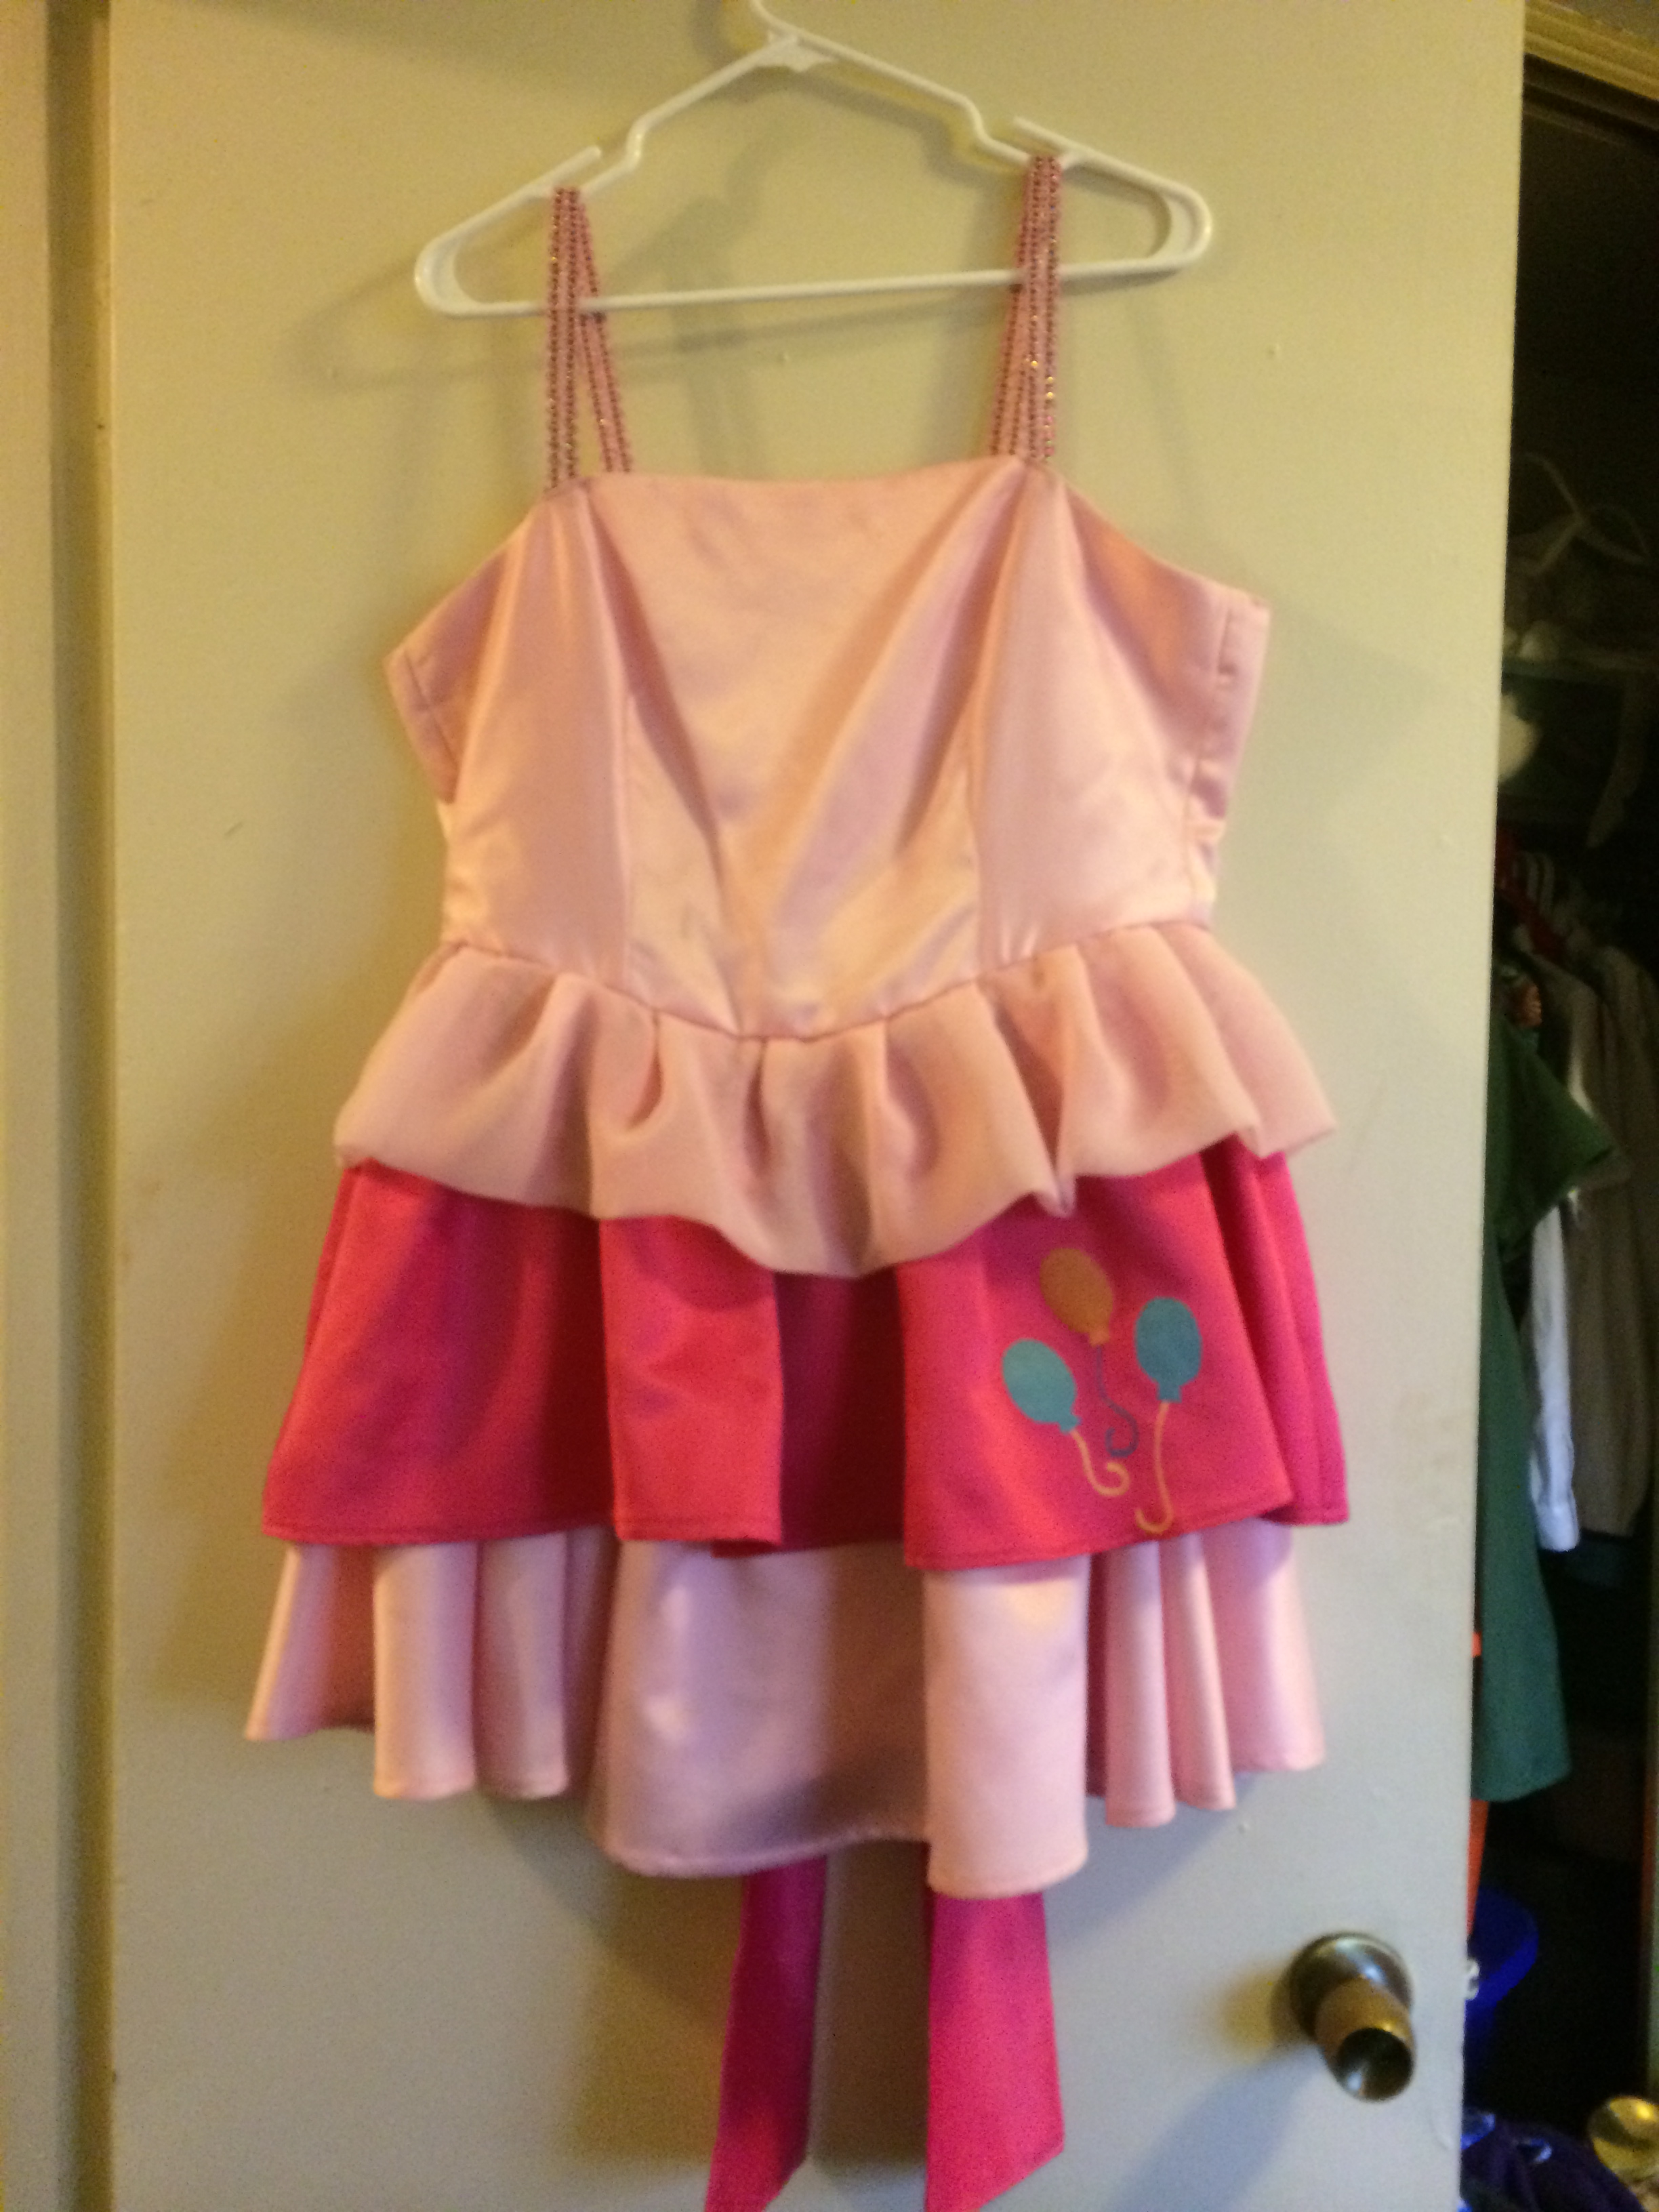 e9cefcfb3 Pinkie Pie Dress - My Little Pony on Storenvy